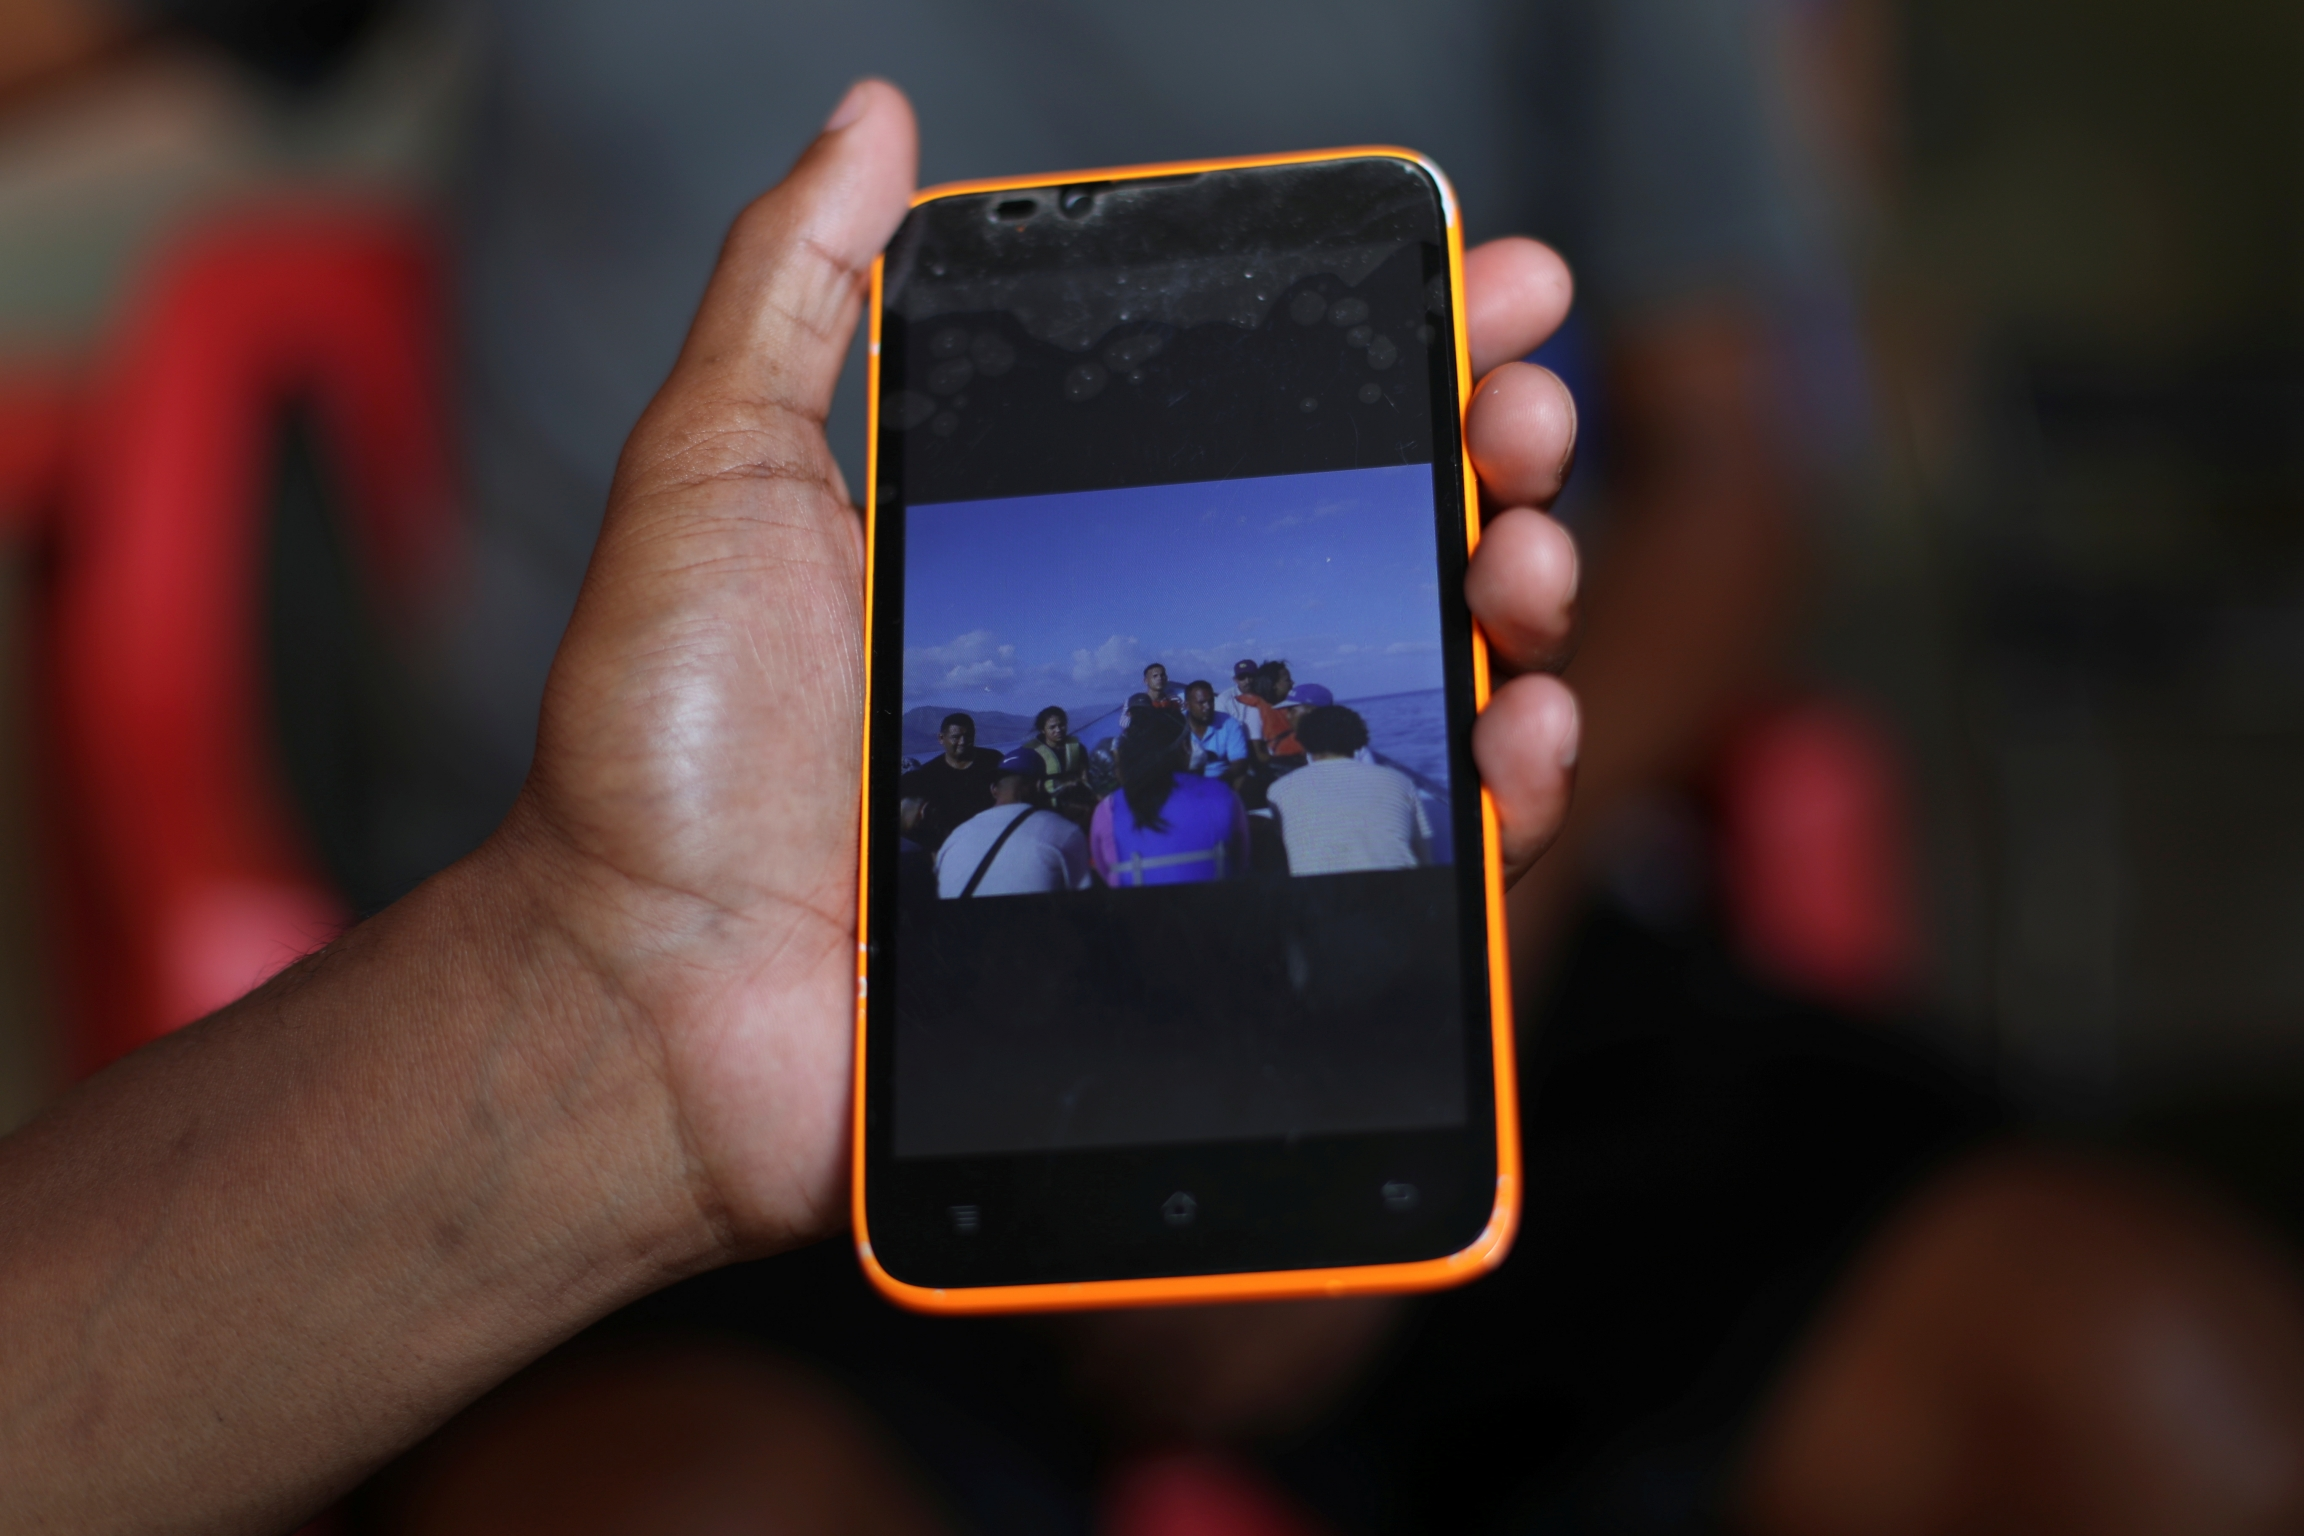 A friend of Maroly shows a picture of the boat that Maroly and her family boarded.